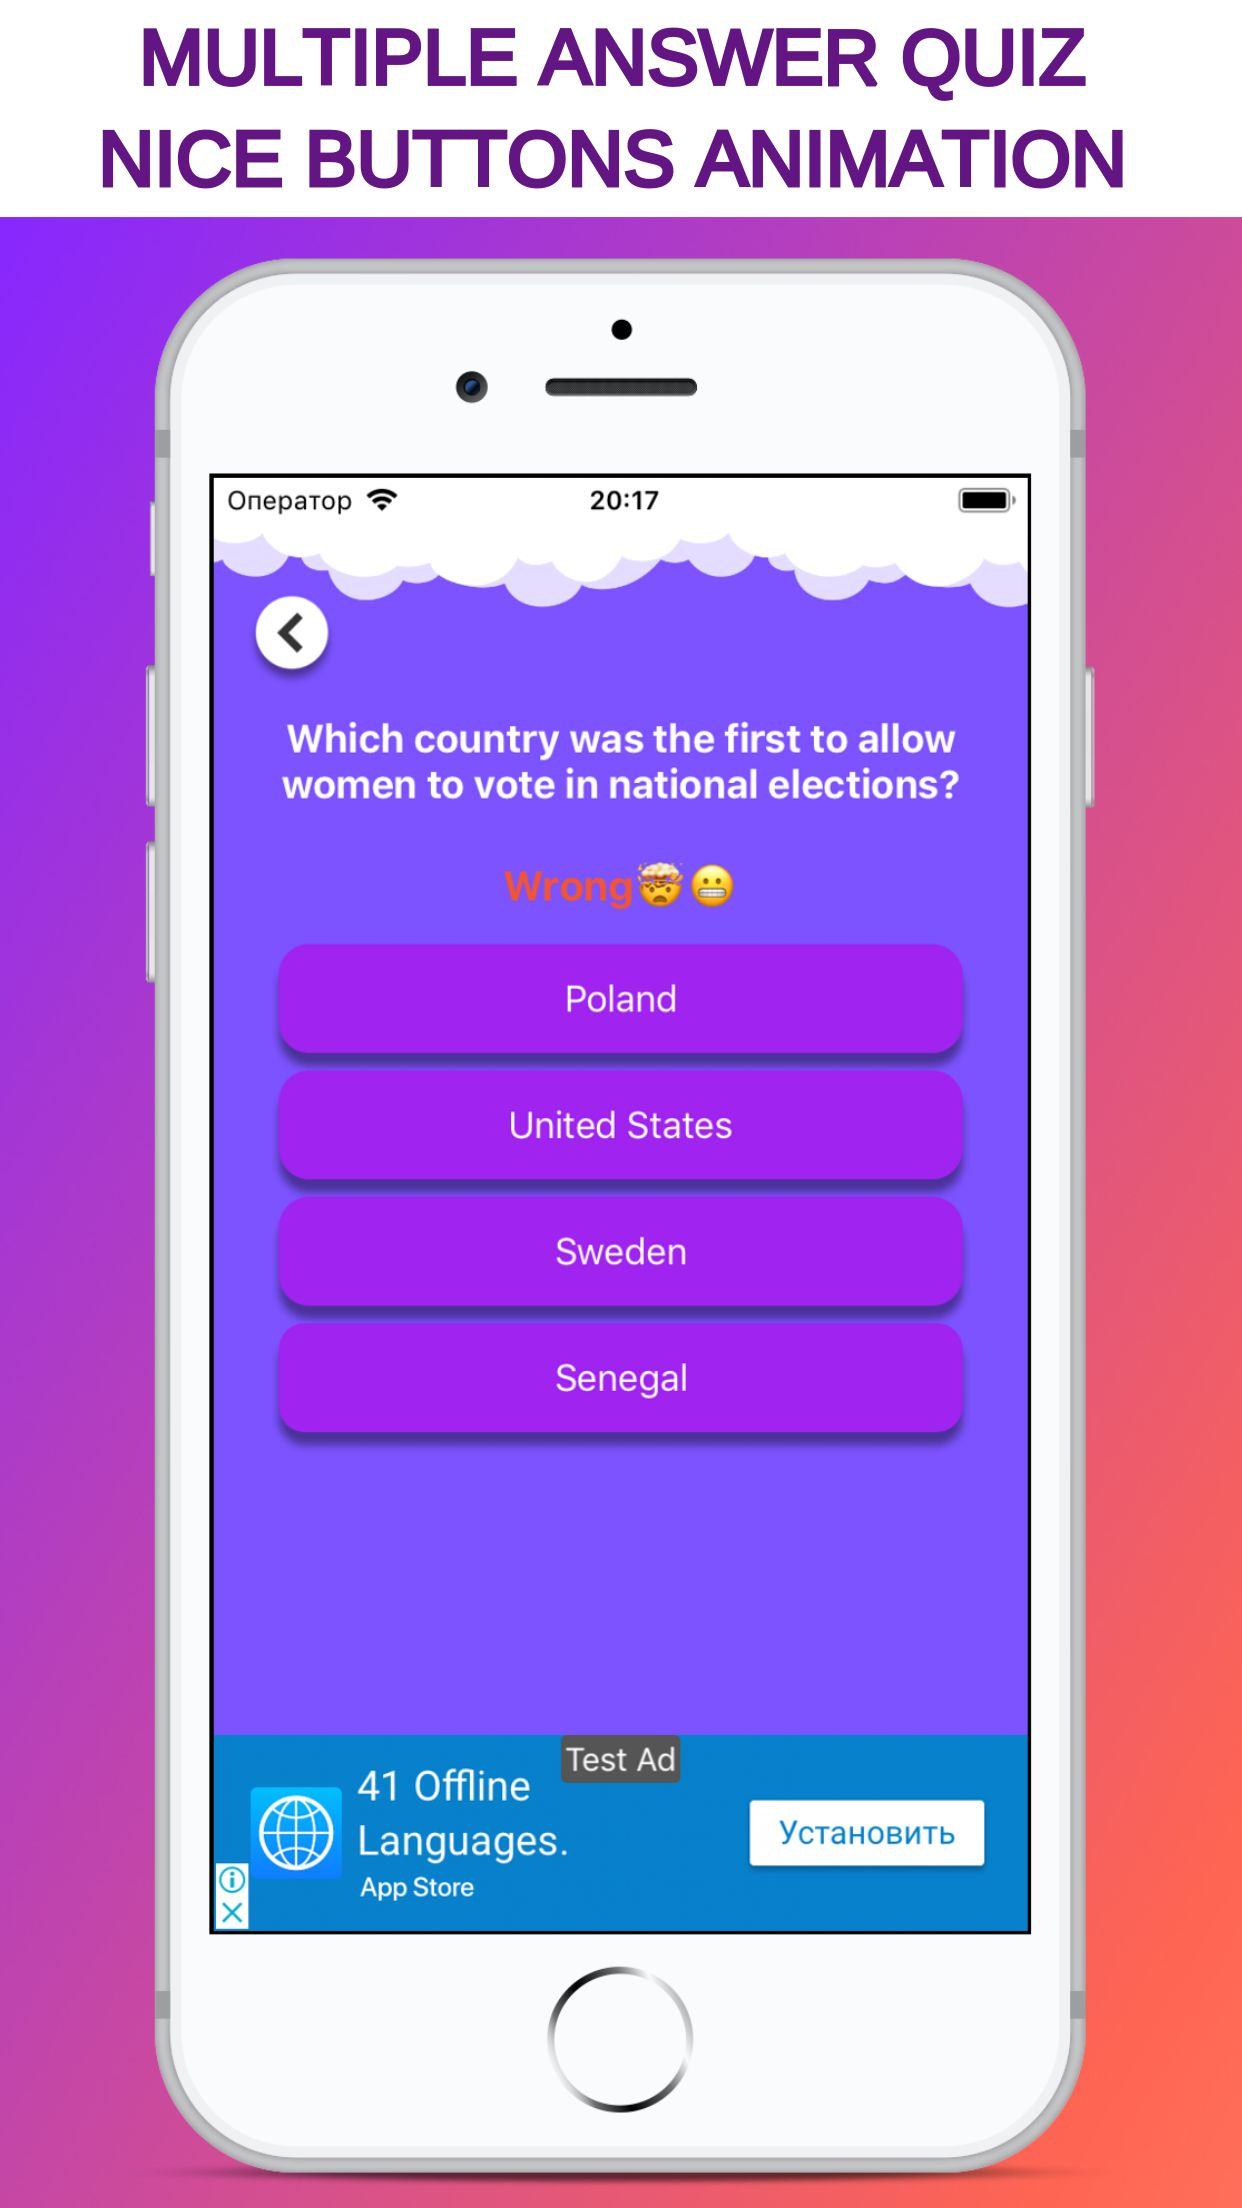 MyQuizz - iOS Multiple Answer Quiz Game Screenshot 7